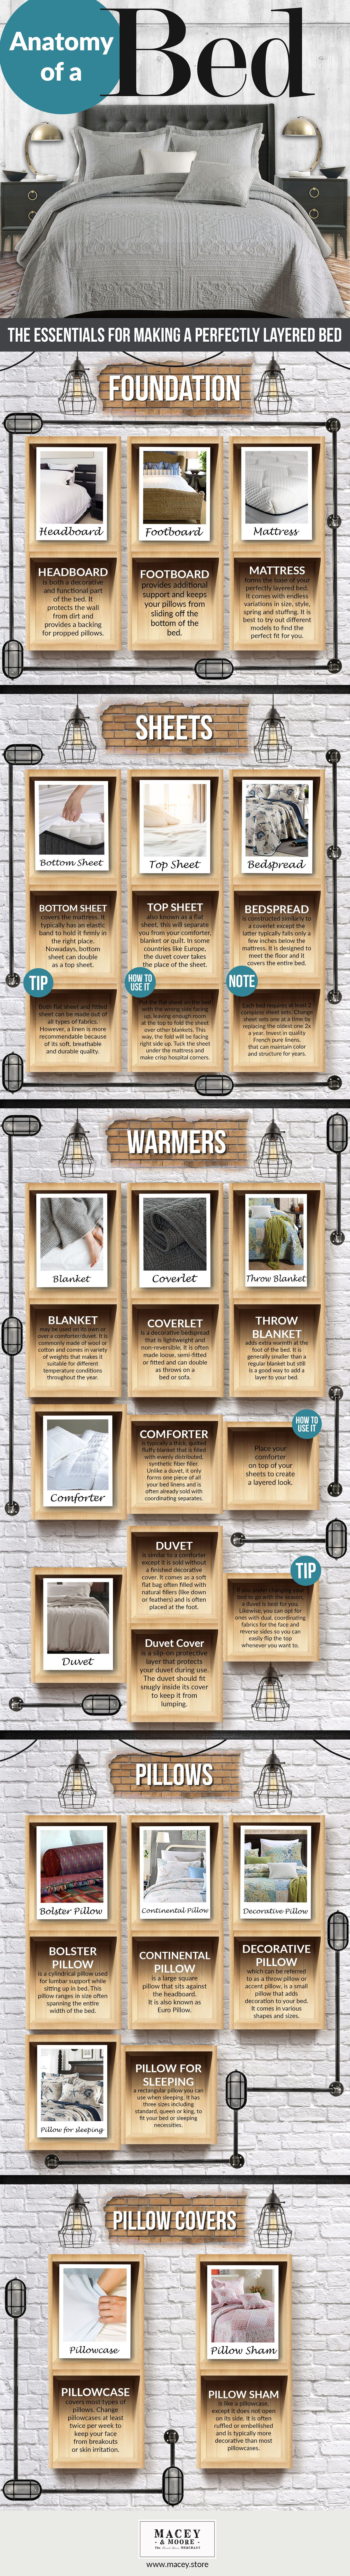 Anatomy of a Bed: The Essentials for Making a Perfectly Layered Bed ...